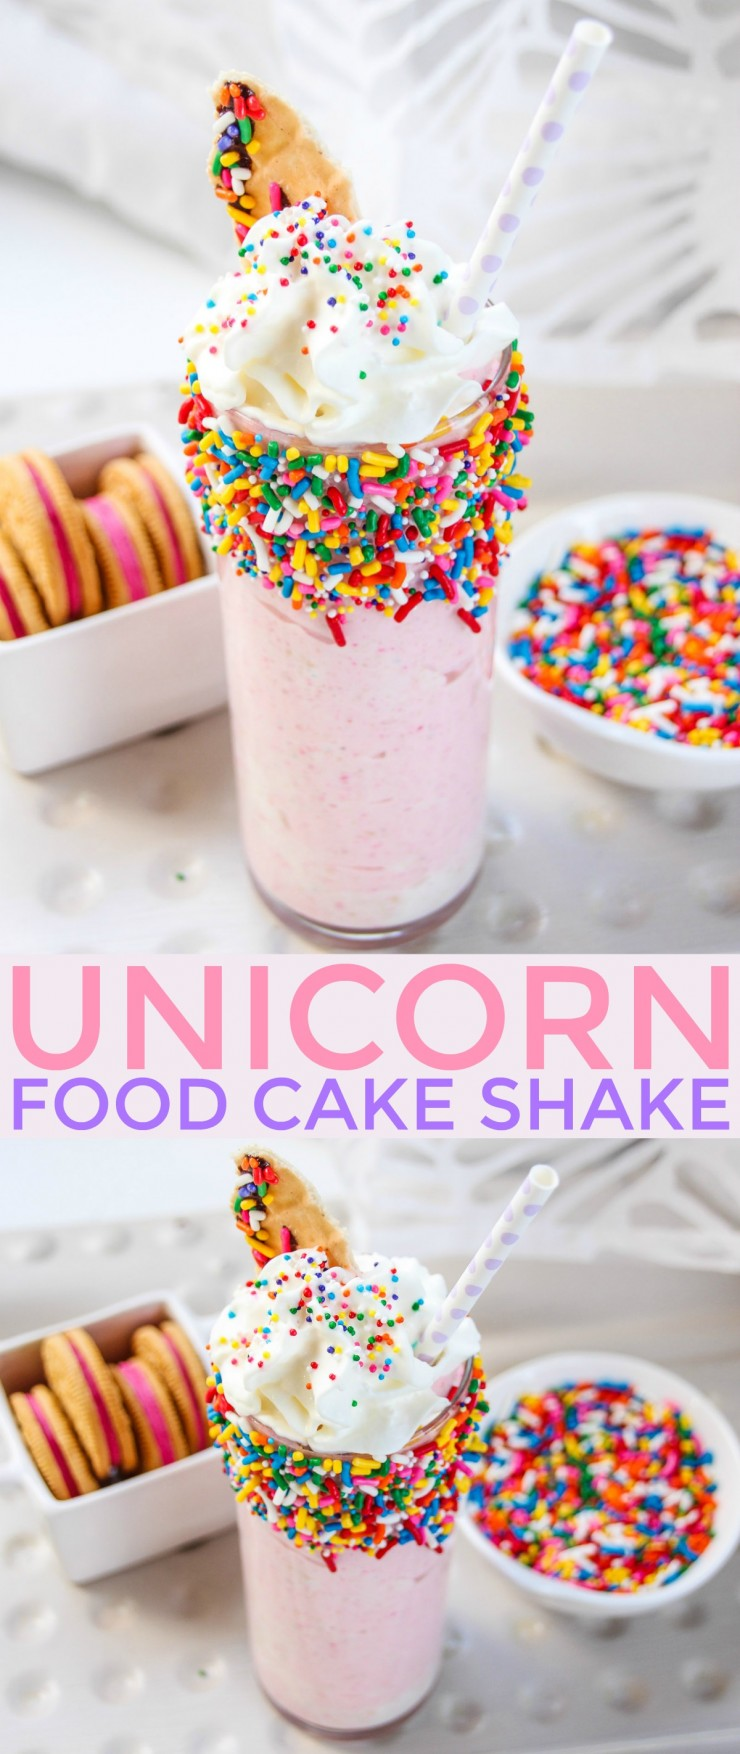 This Unicorn Food Cake Shake is the perfect addition to any unicorn themed birthday party or for anyone addicted to everything and anything unicorn. This milkshake doesn't only look adorable, it tastes delicious too!